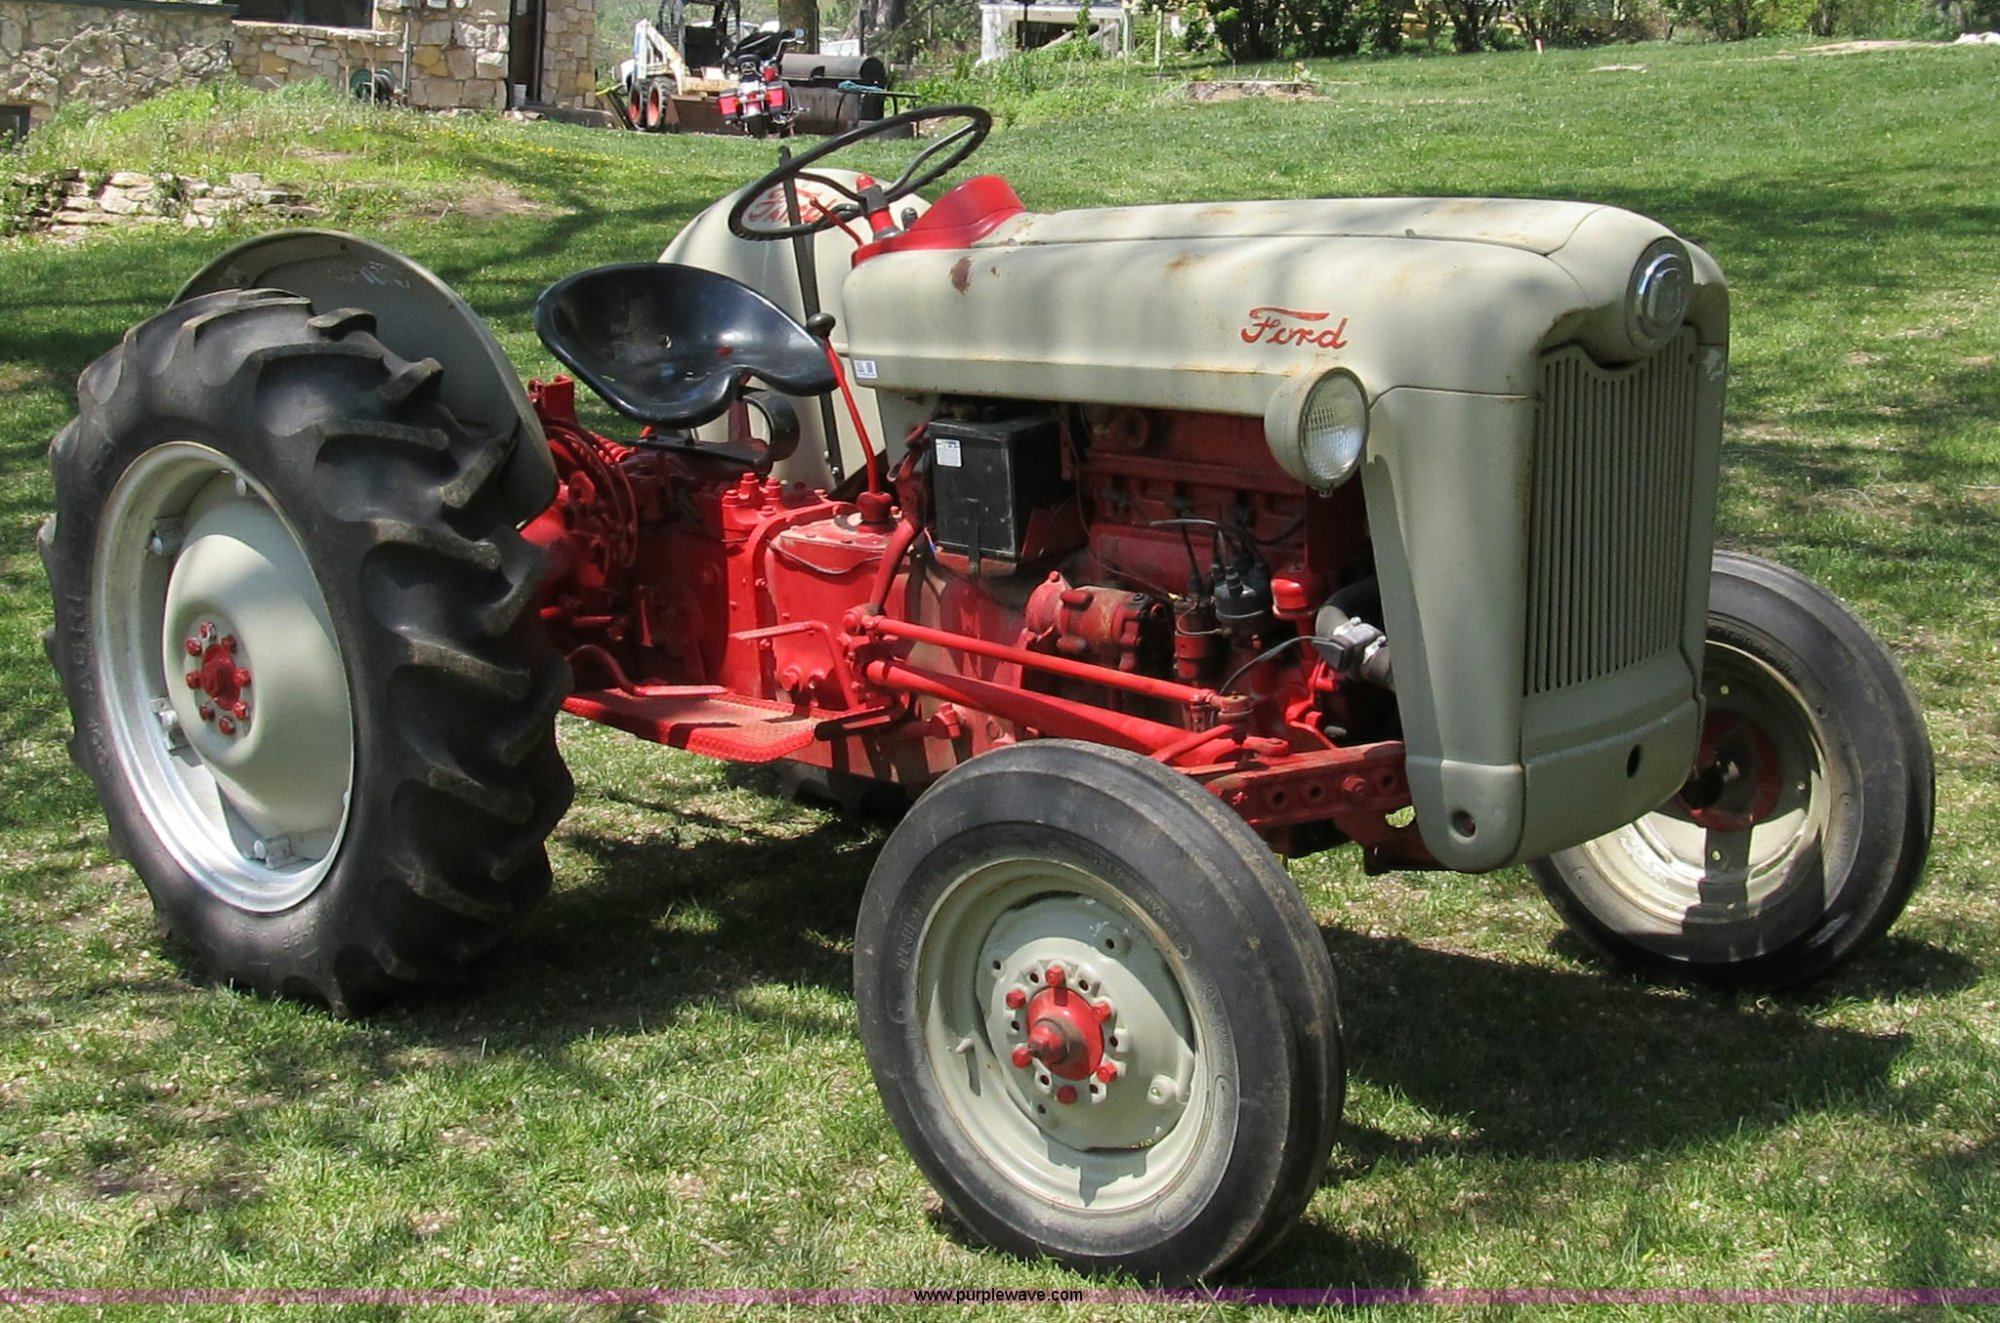 hight resolution of 8982 image for item 8982 1954 ford jubilee tractor